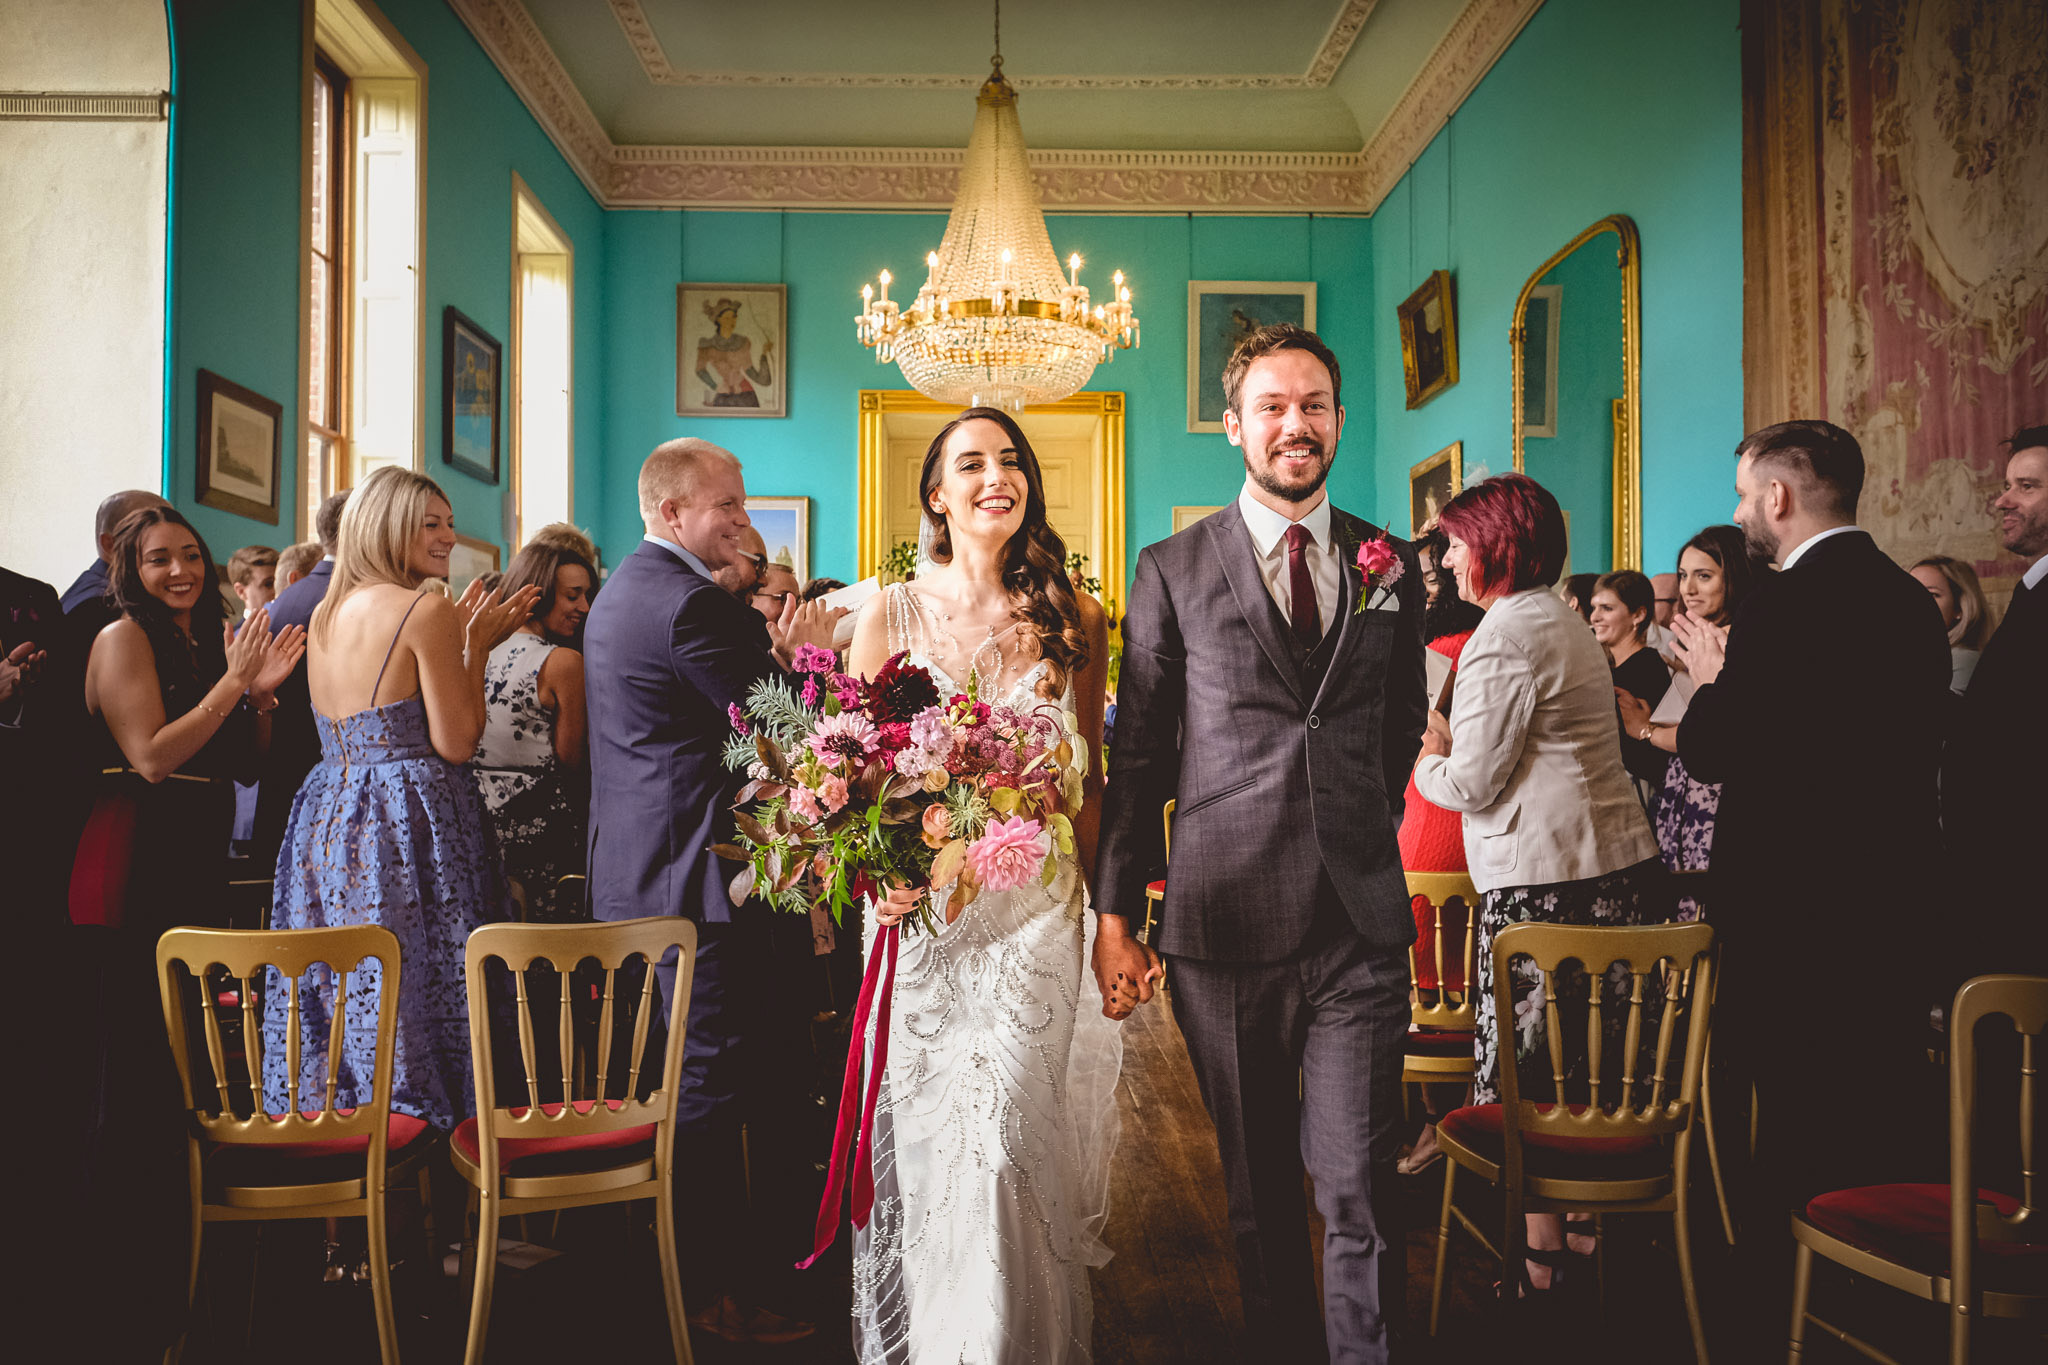 Walcot Hall, Shopshire, England, turquoise wedding and reception site - photo by Andrew Billington